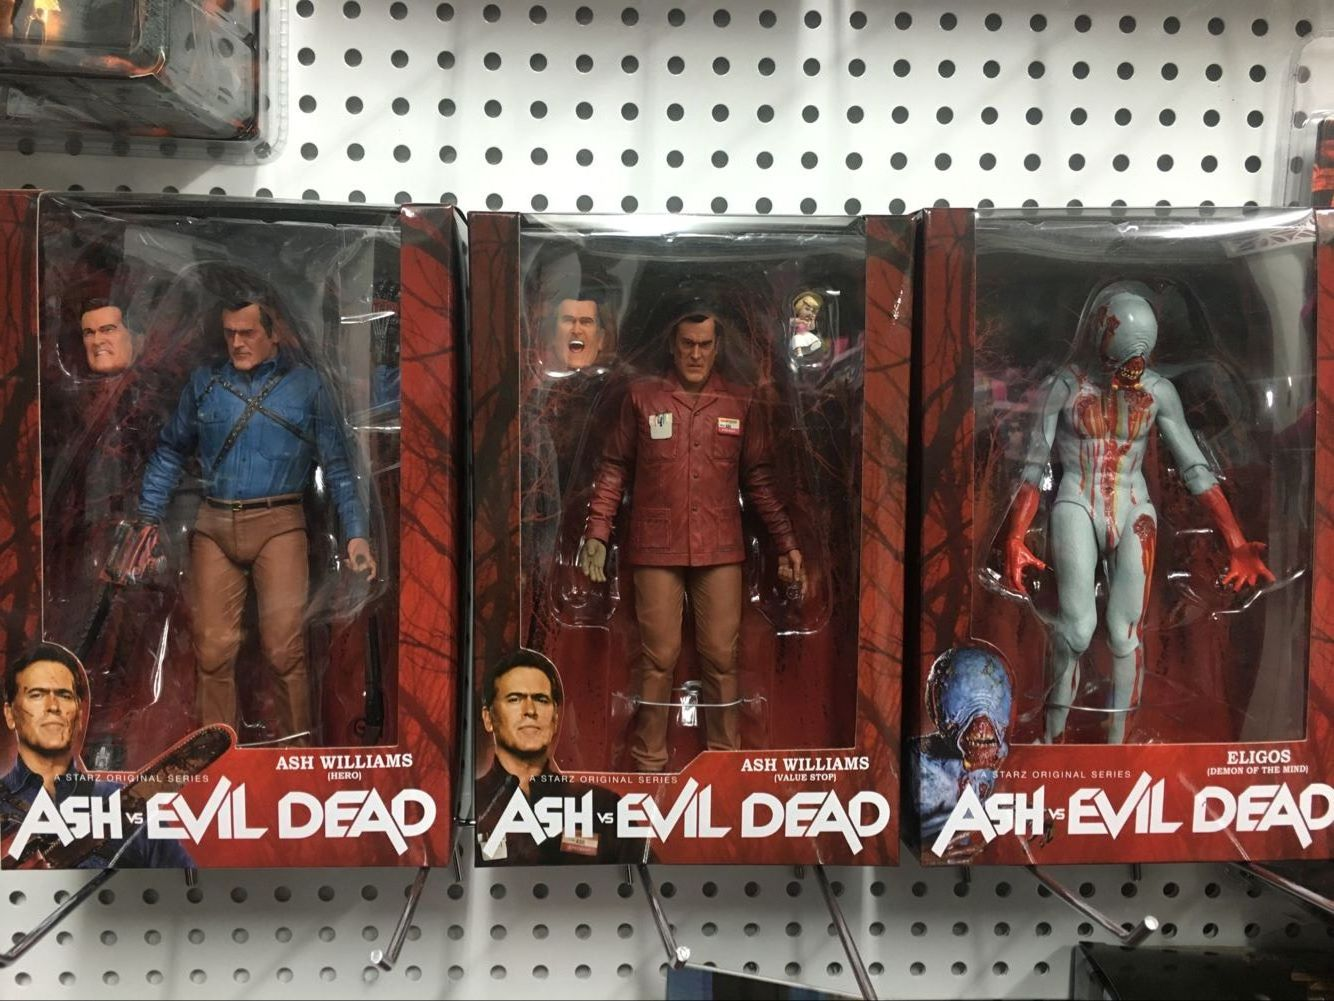 NECA The Evil Dead Ash Vs Evil Dead Ash Williams Eligos PVC Action Figure Collectible Model Toy 18cm KT3427 neca the texas chainsaw massacre pvc action figure collectible model toy 18cm 7 kt3703